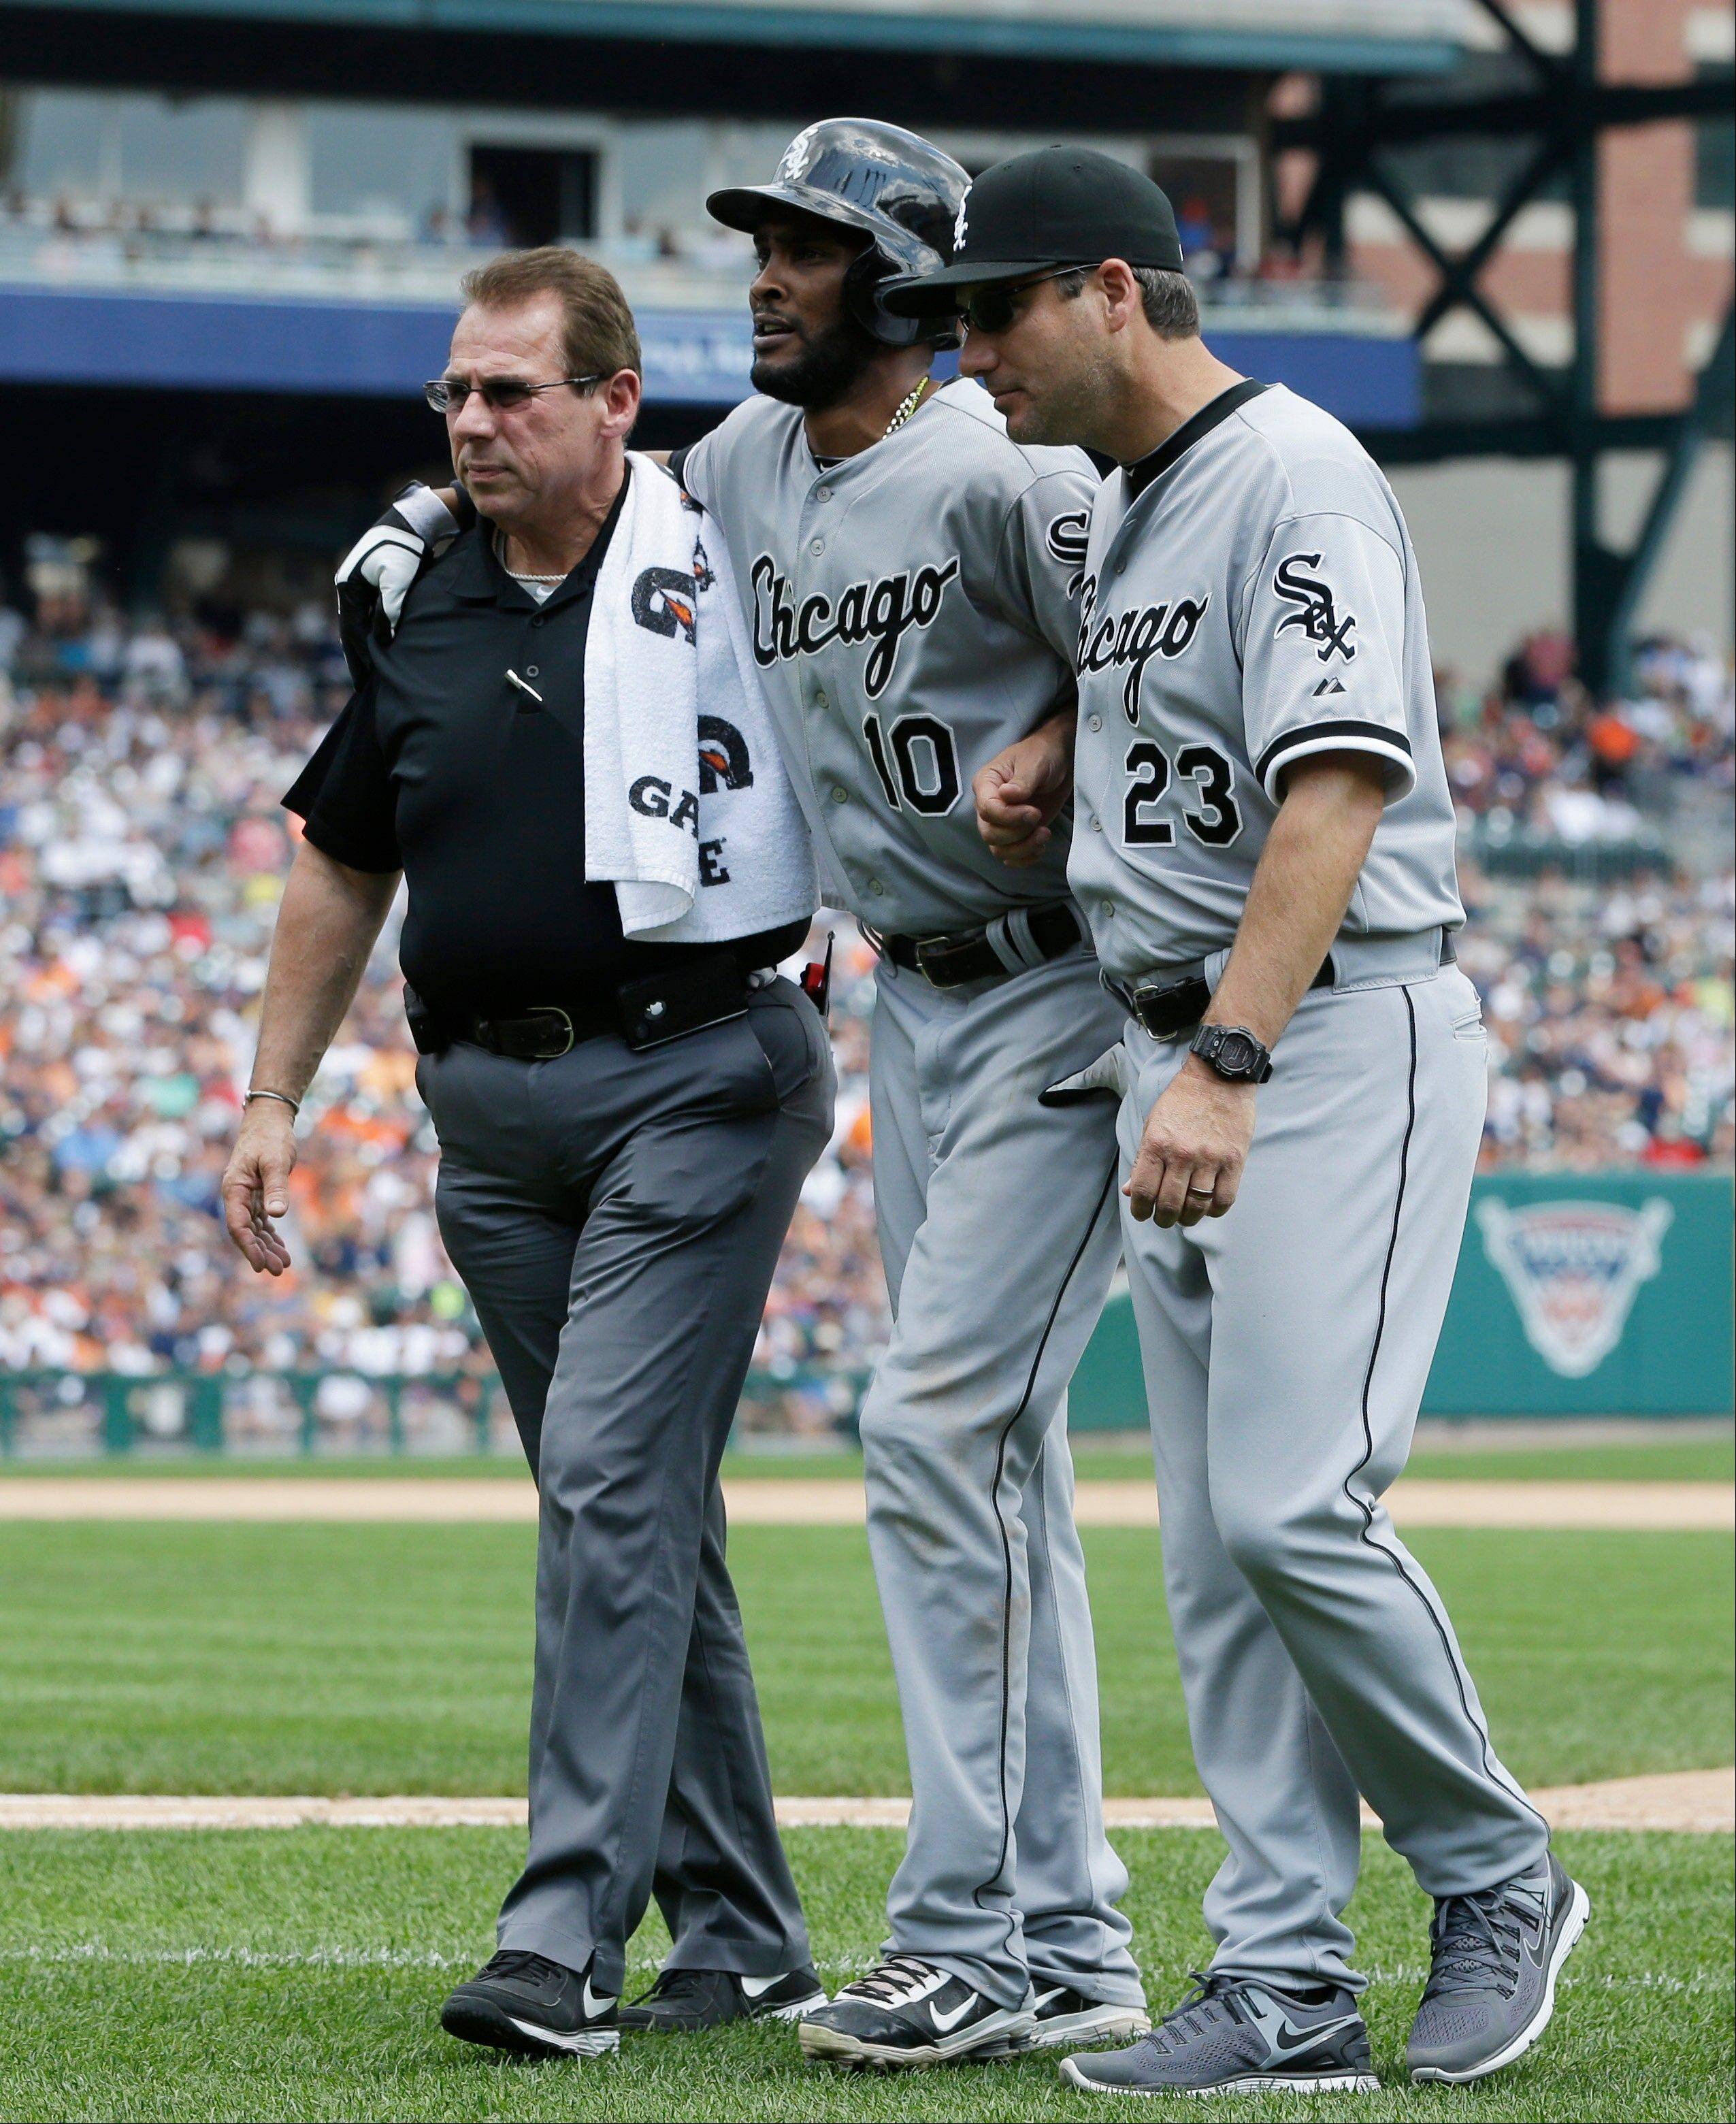 White Sox manager Robin Ventura, here helping shortstop Alexei Ramirez off the field during a game last week, has seen his team limp to a 37-55 record, the franchise�s worst mark at the all-star break since 1989.